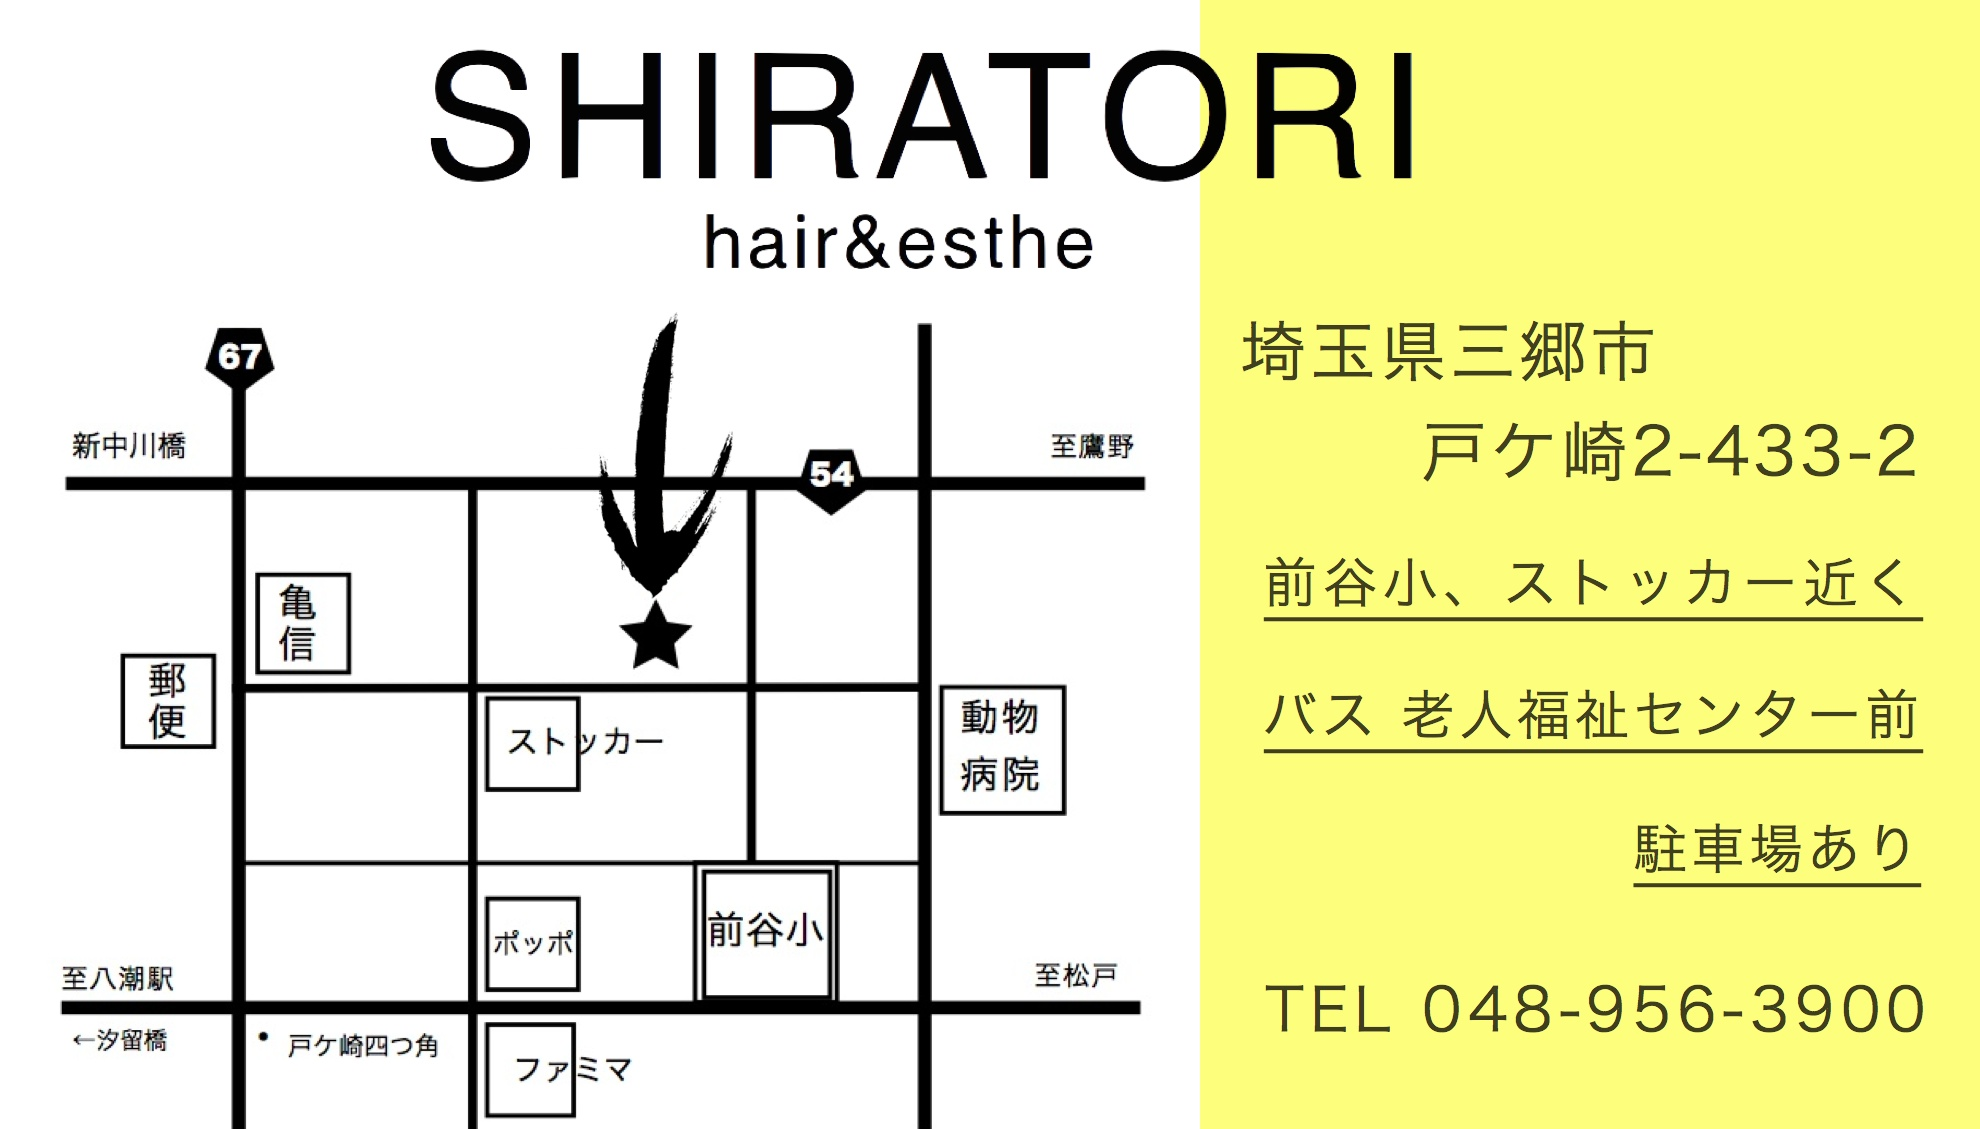 hair & esthe SHIRATORI